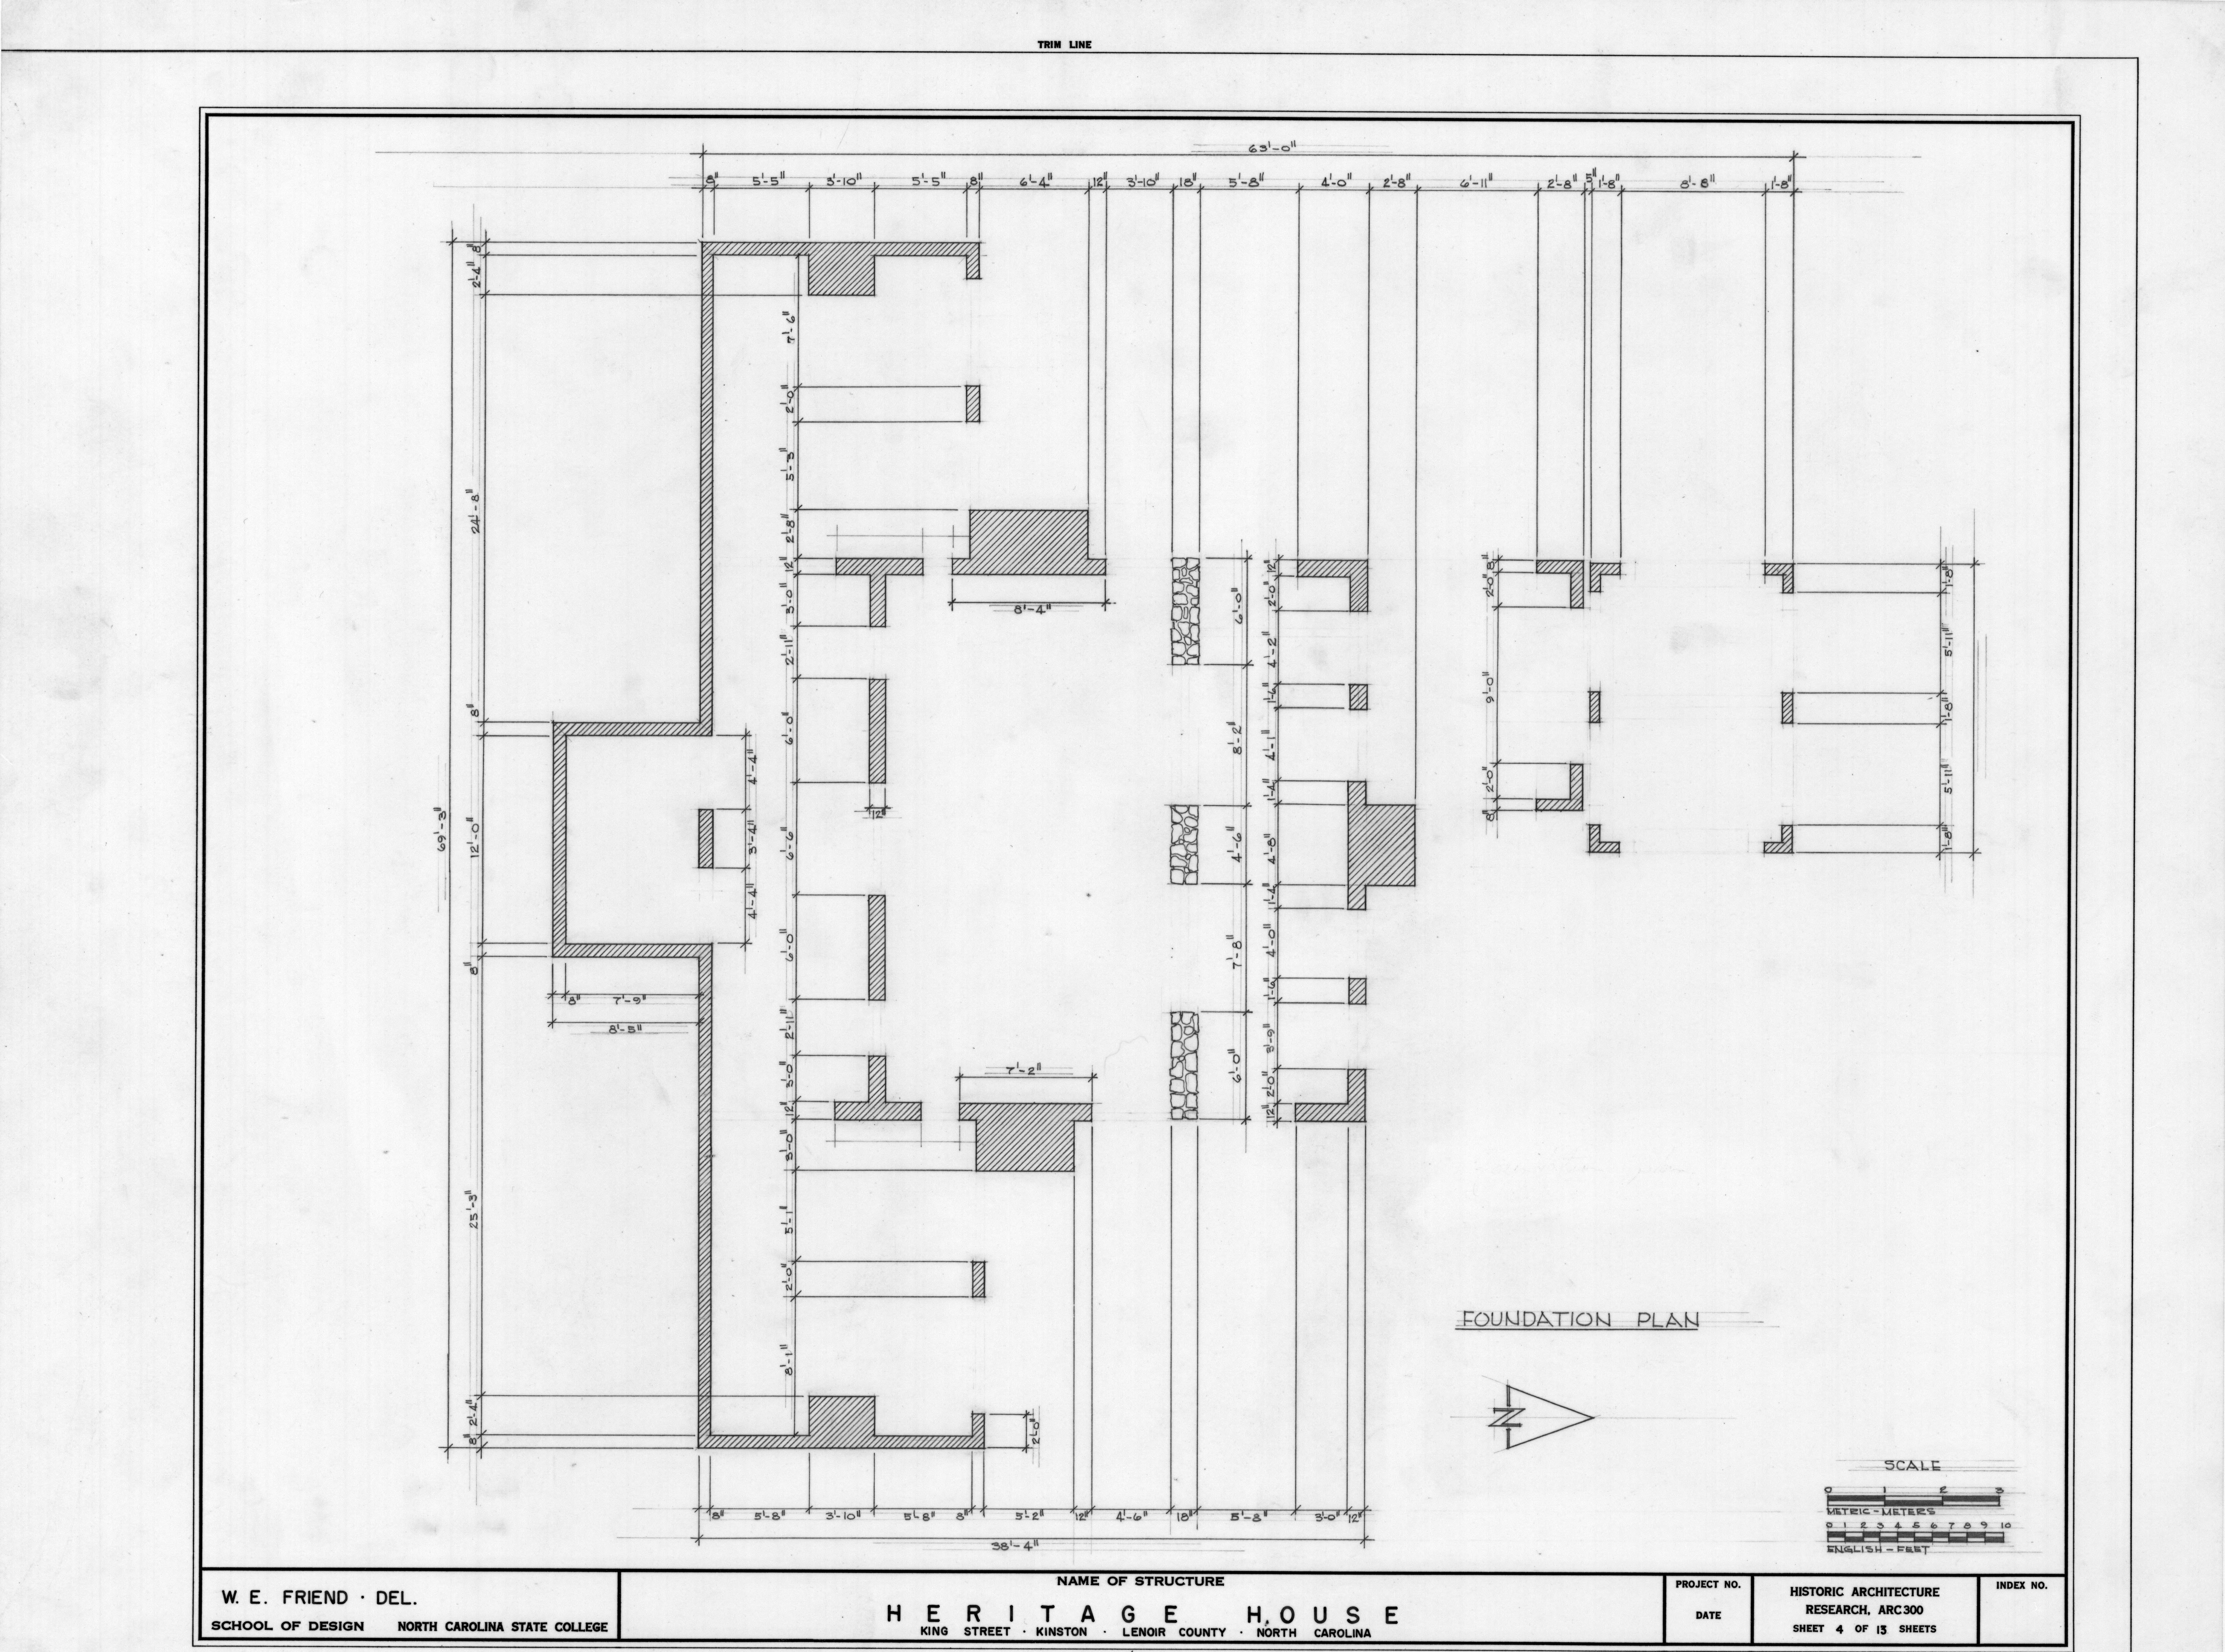 Foundation plan peebles house kinston north carolina for Home foundation plan